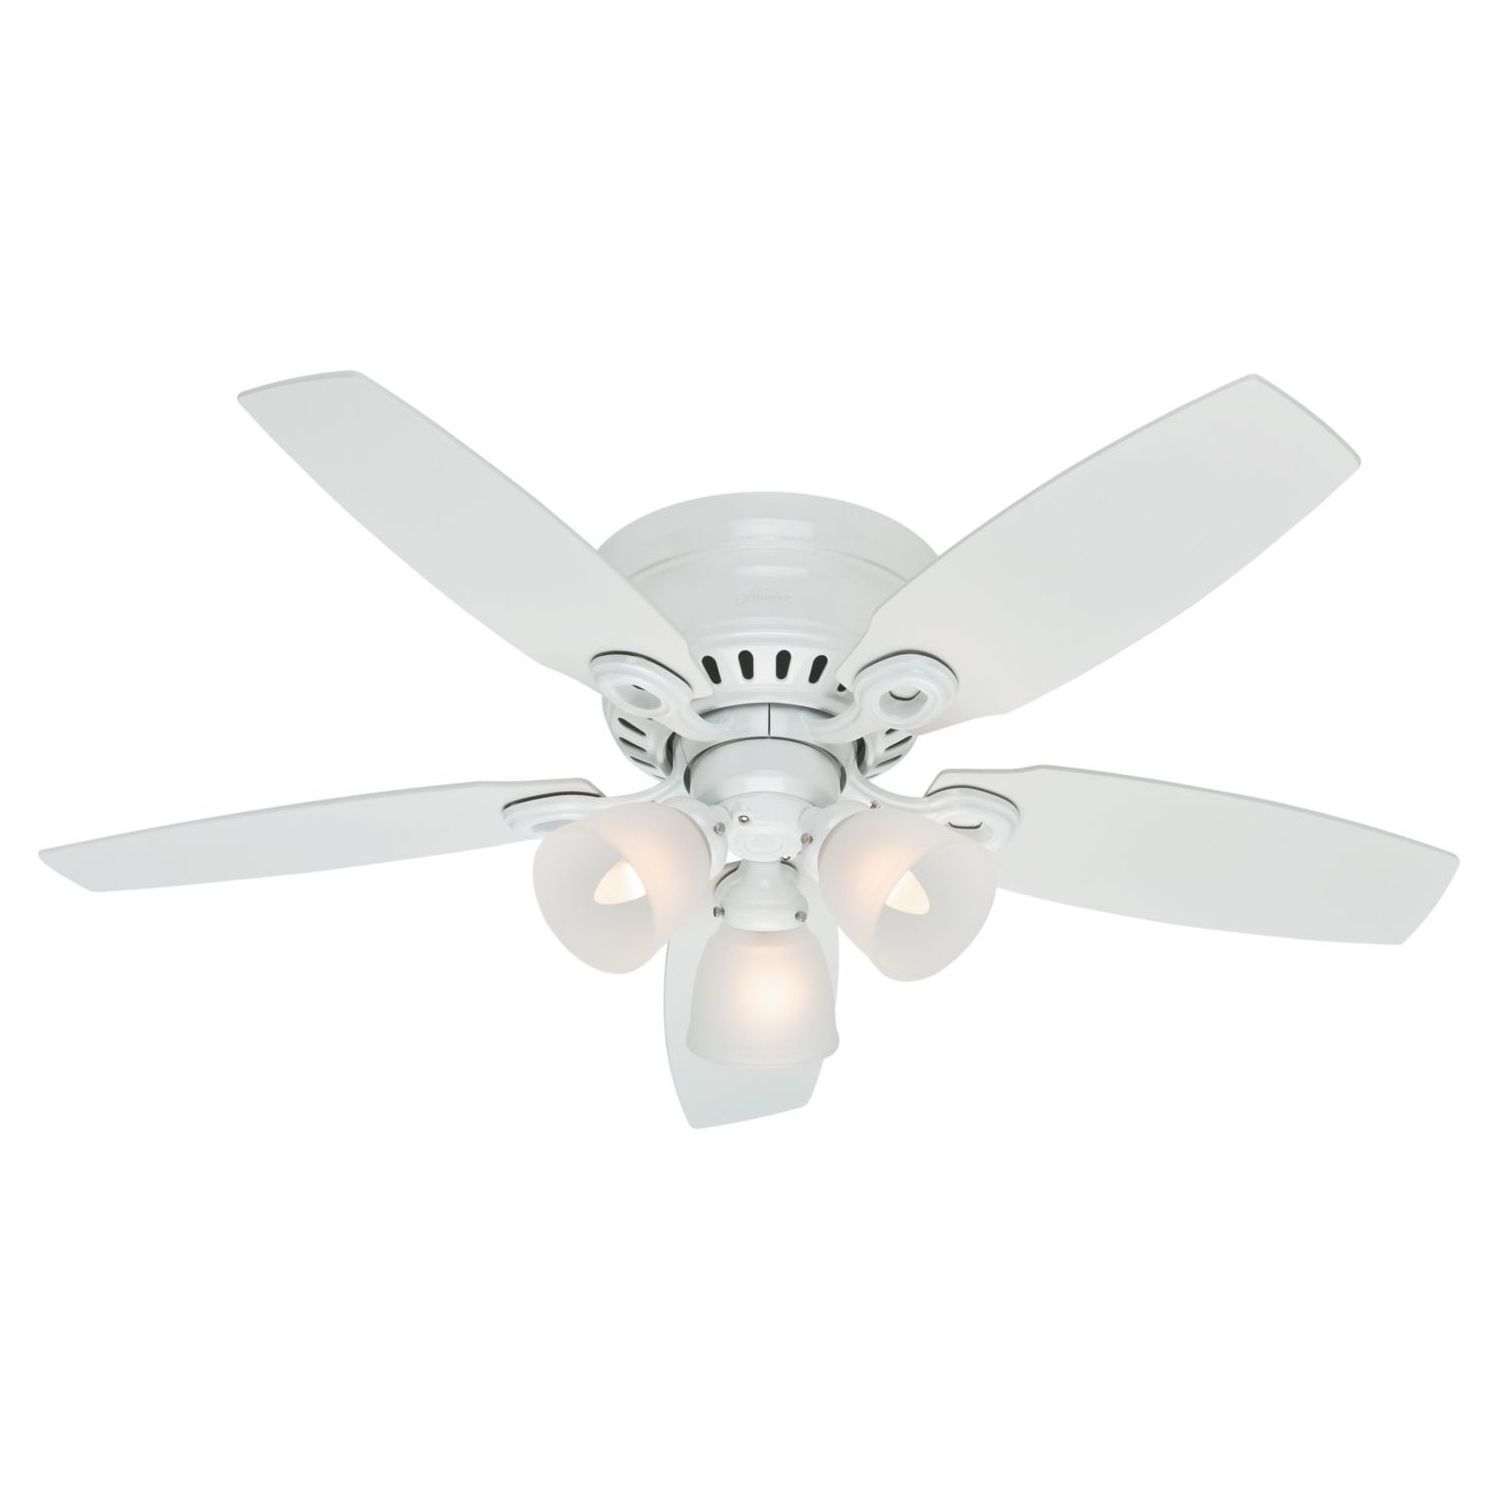 fan rooms small pin low is the fans for hatherton snow with perfect ceilings white hunter inch by ceiling